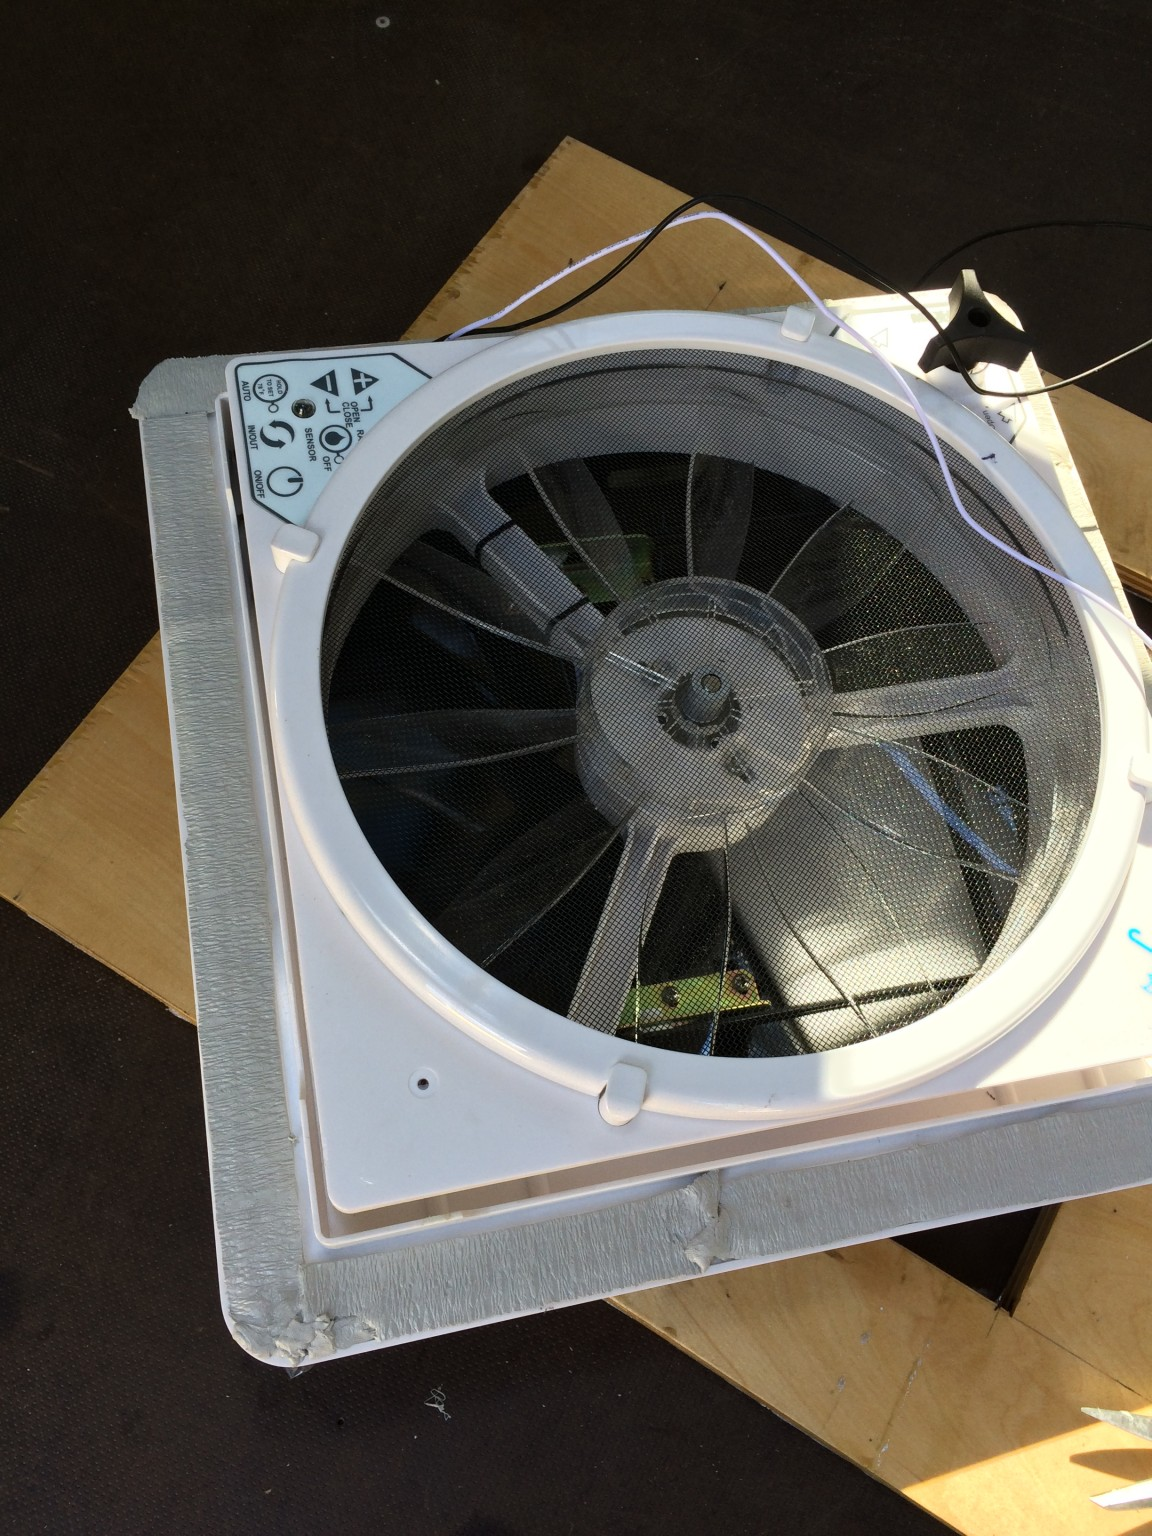 Sealing the roof fan with putty tape